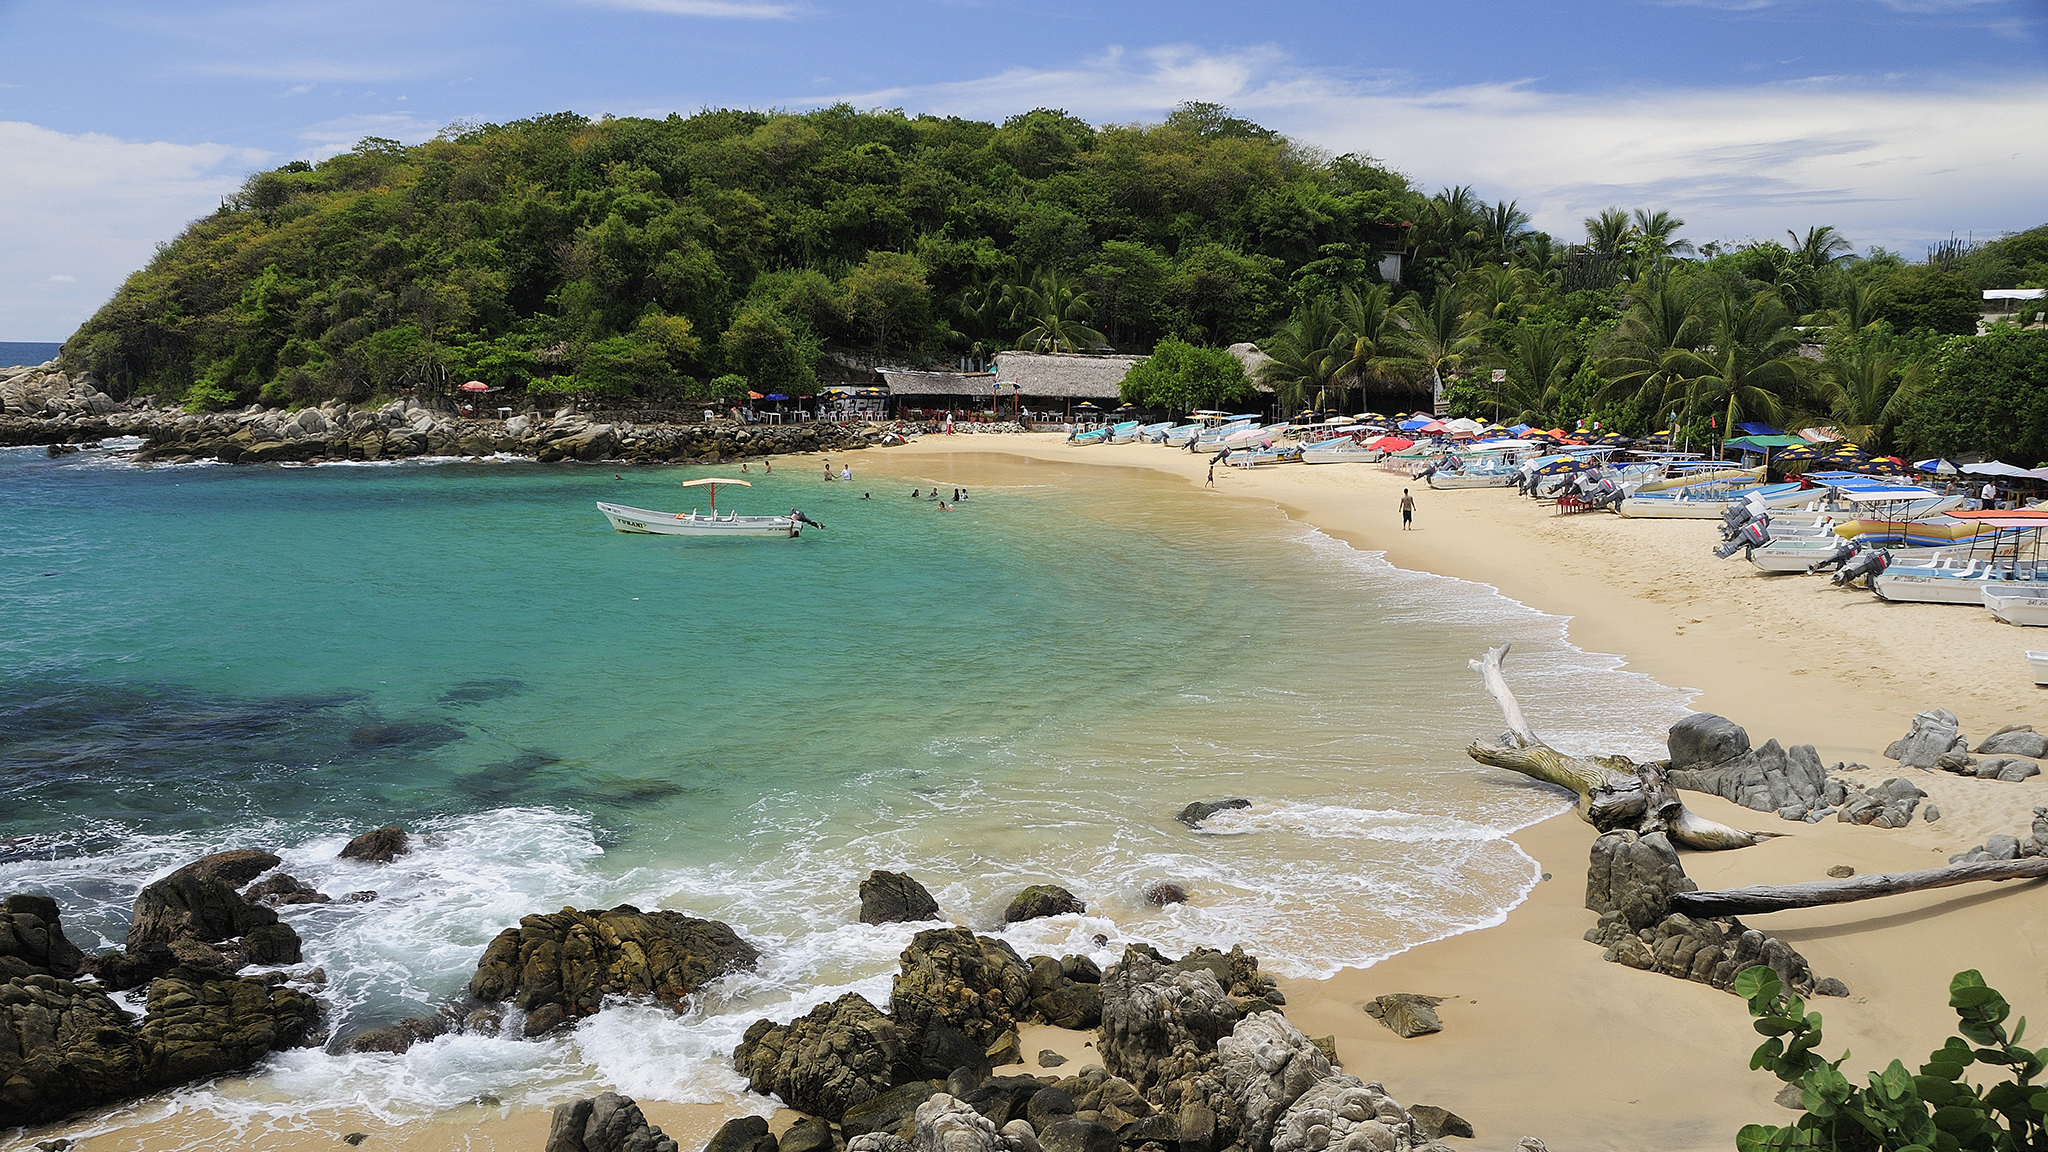 Puerto Escondido retains off-the-beaten-track charm | Financial Times